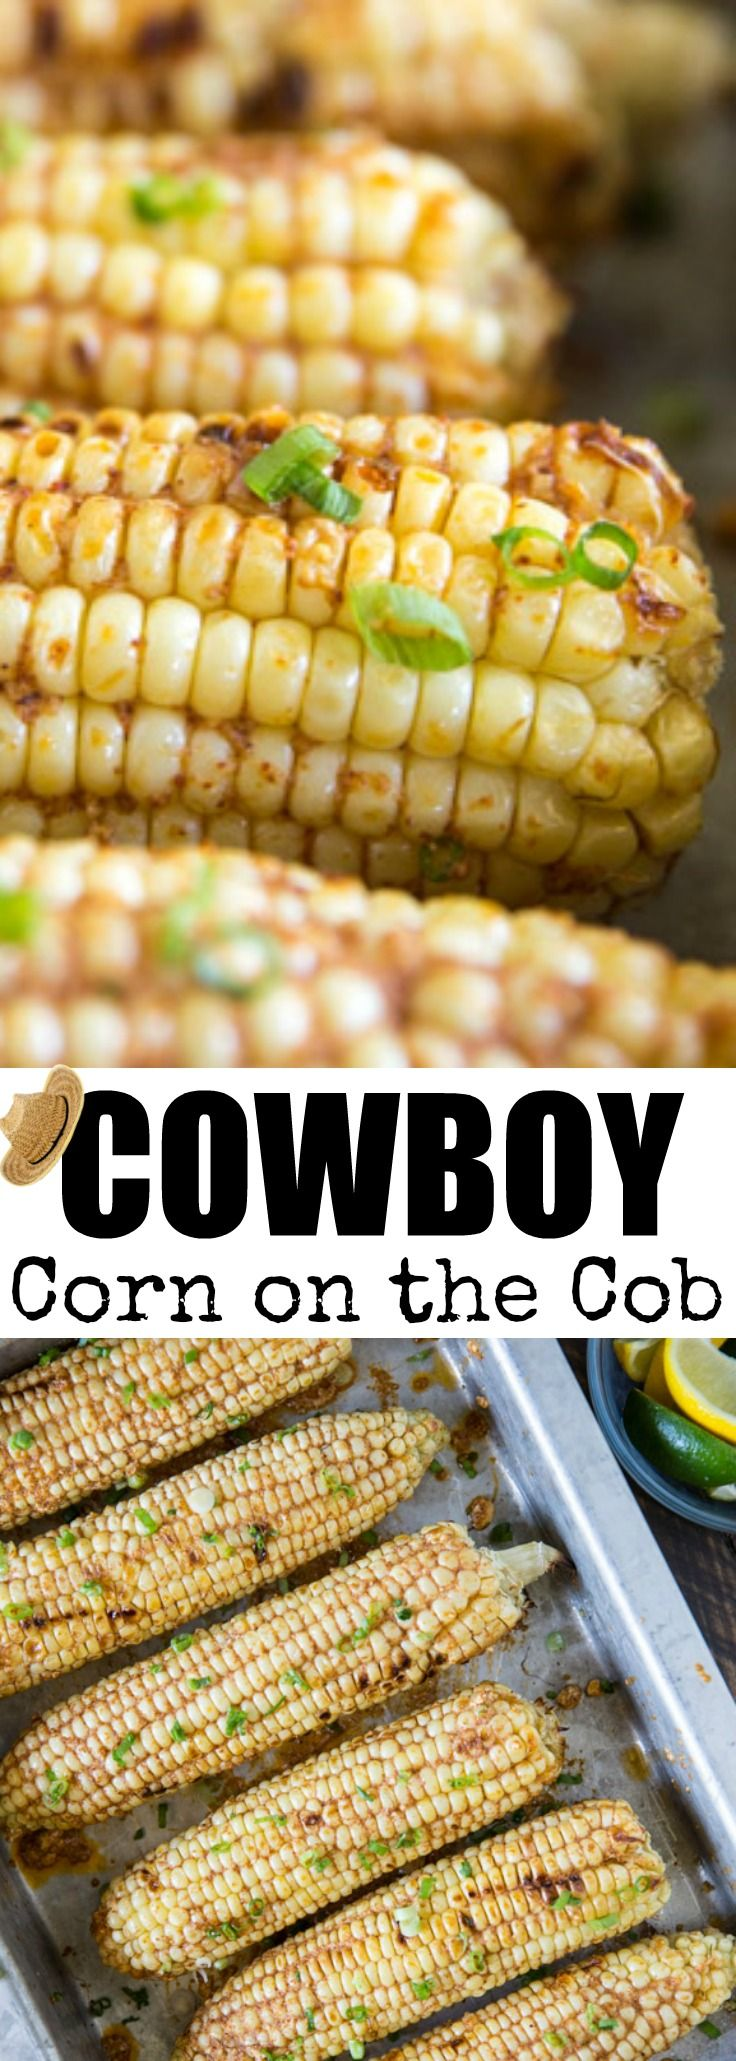 Cowboy Corn on the Cob is sweet and spicy all at once! Make it on the grill or in the oven for the perfect summer side dish. So easy and packed with flavor! via @culinaryhill